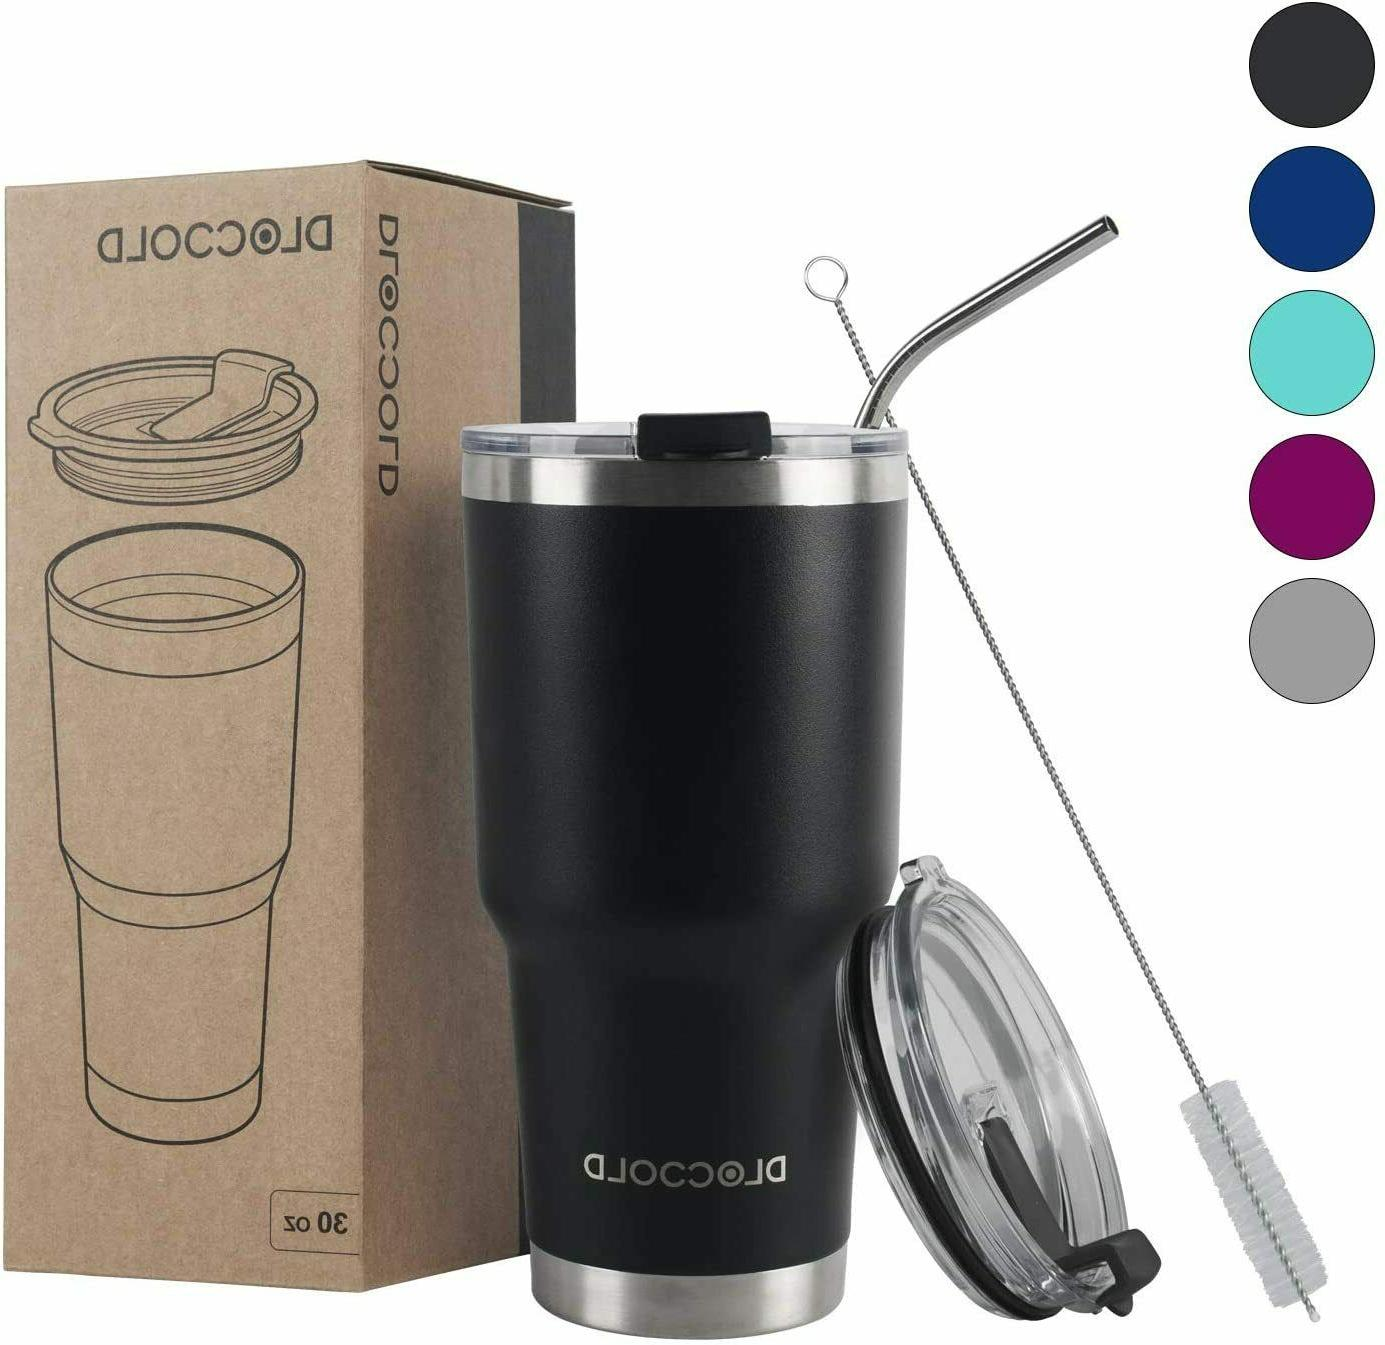 DLOCCOLD 30oz Wall Vacuum Insulated Travel wi